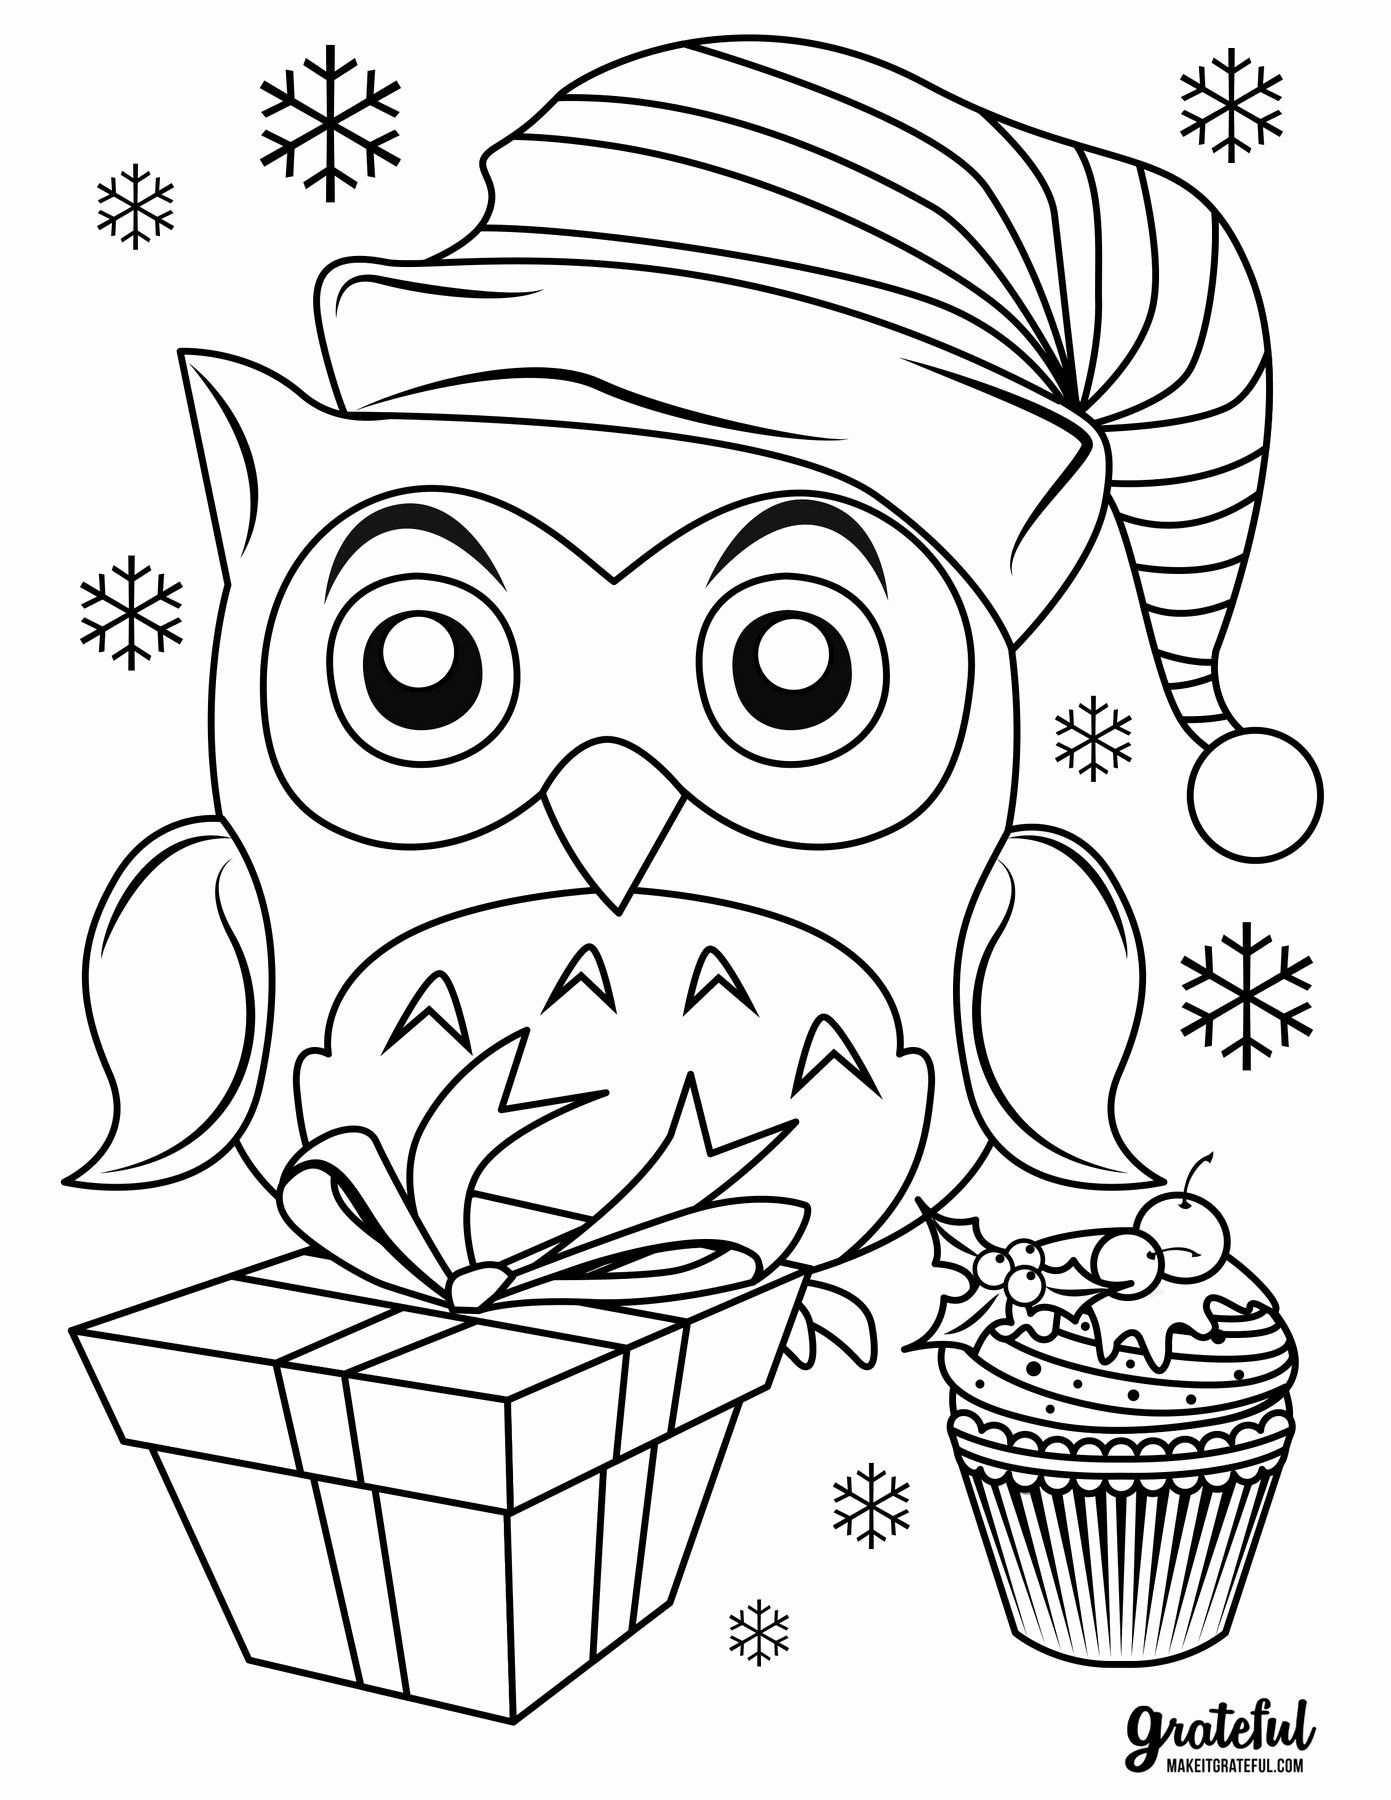 Free Printable Holiday Coloring Pages Unique Coloring Christmas Coloring Pages For Kids Adul In 2020 Owl Coloring Pages Cartoon Coloring Pages Christmas Coloring Books